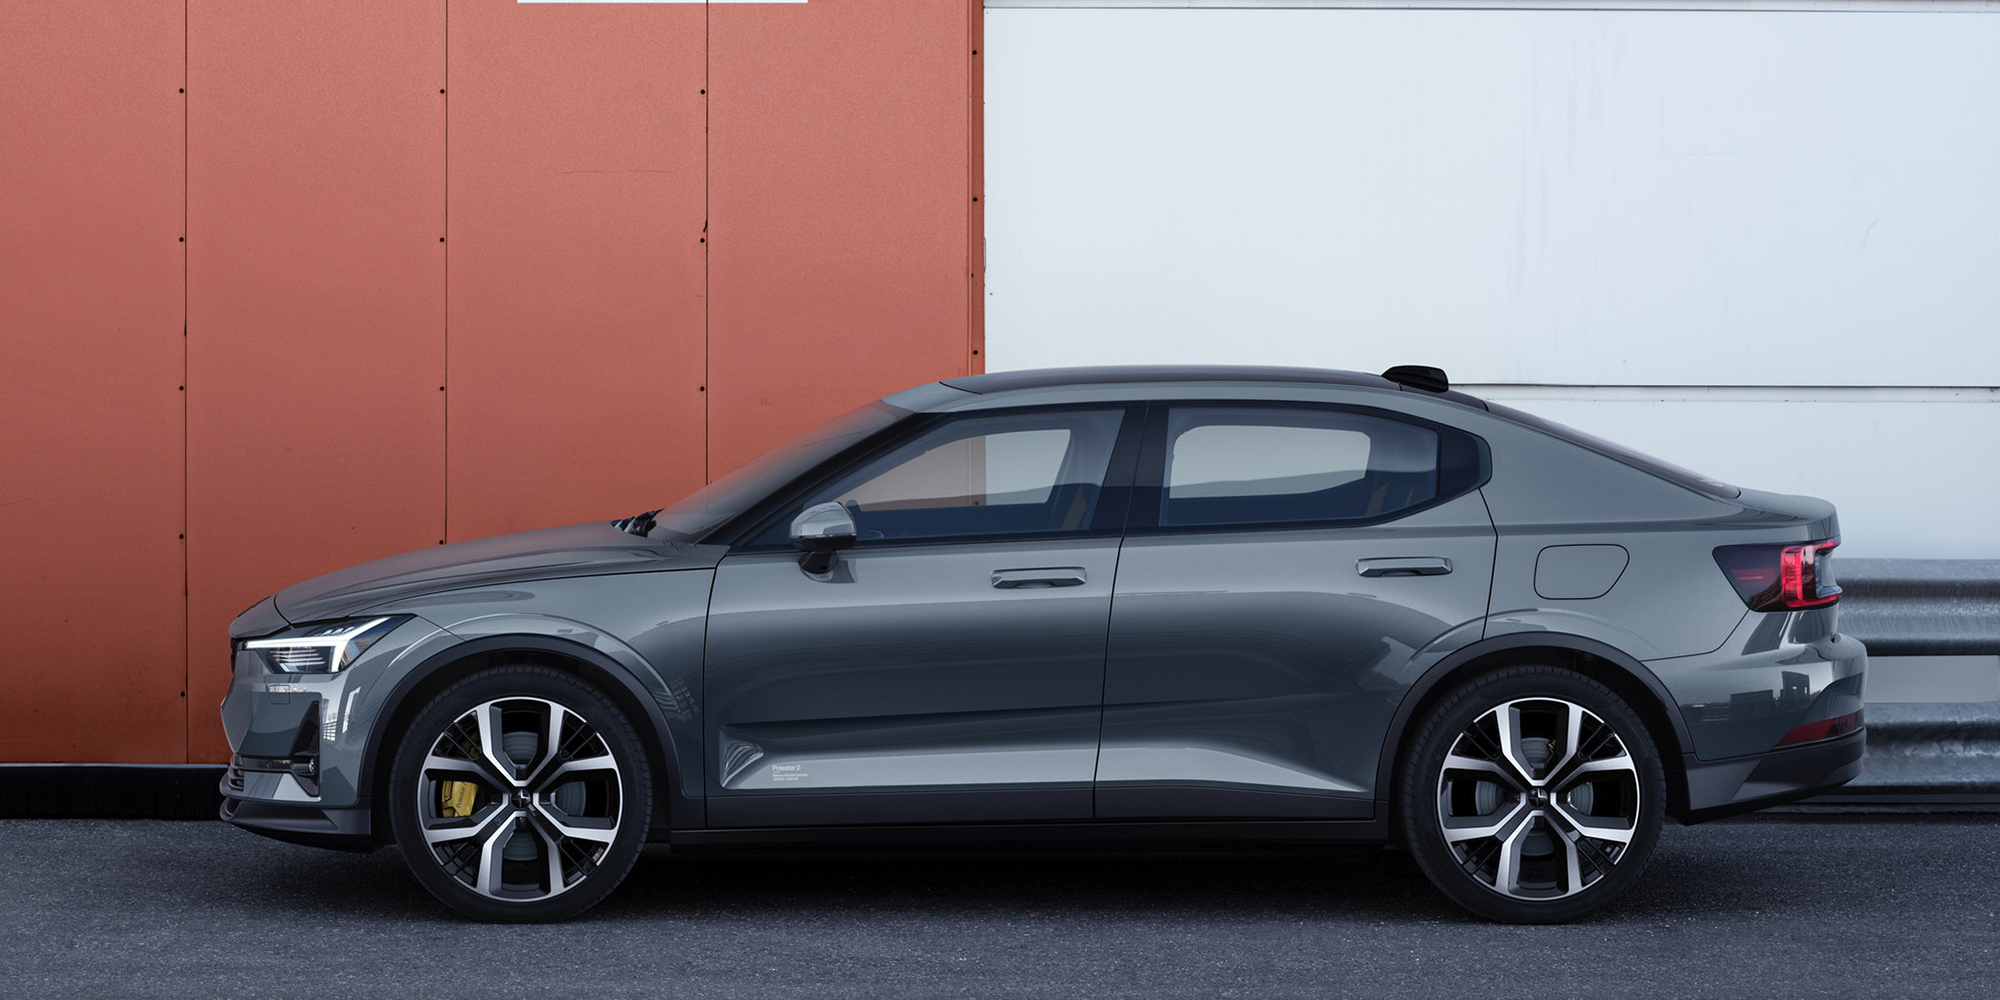 Volvo Polestar 2 is the first vehicle w/ native Android Auto